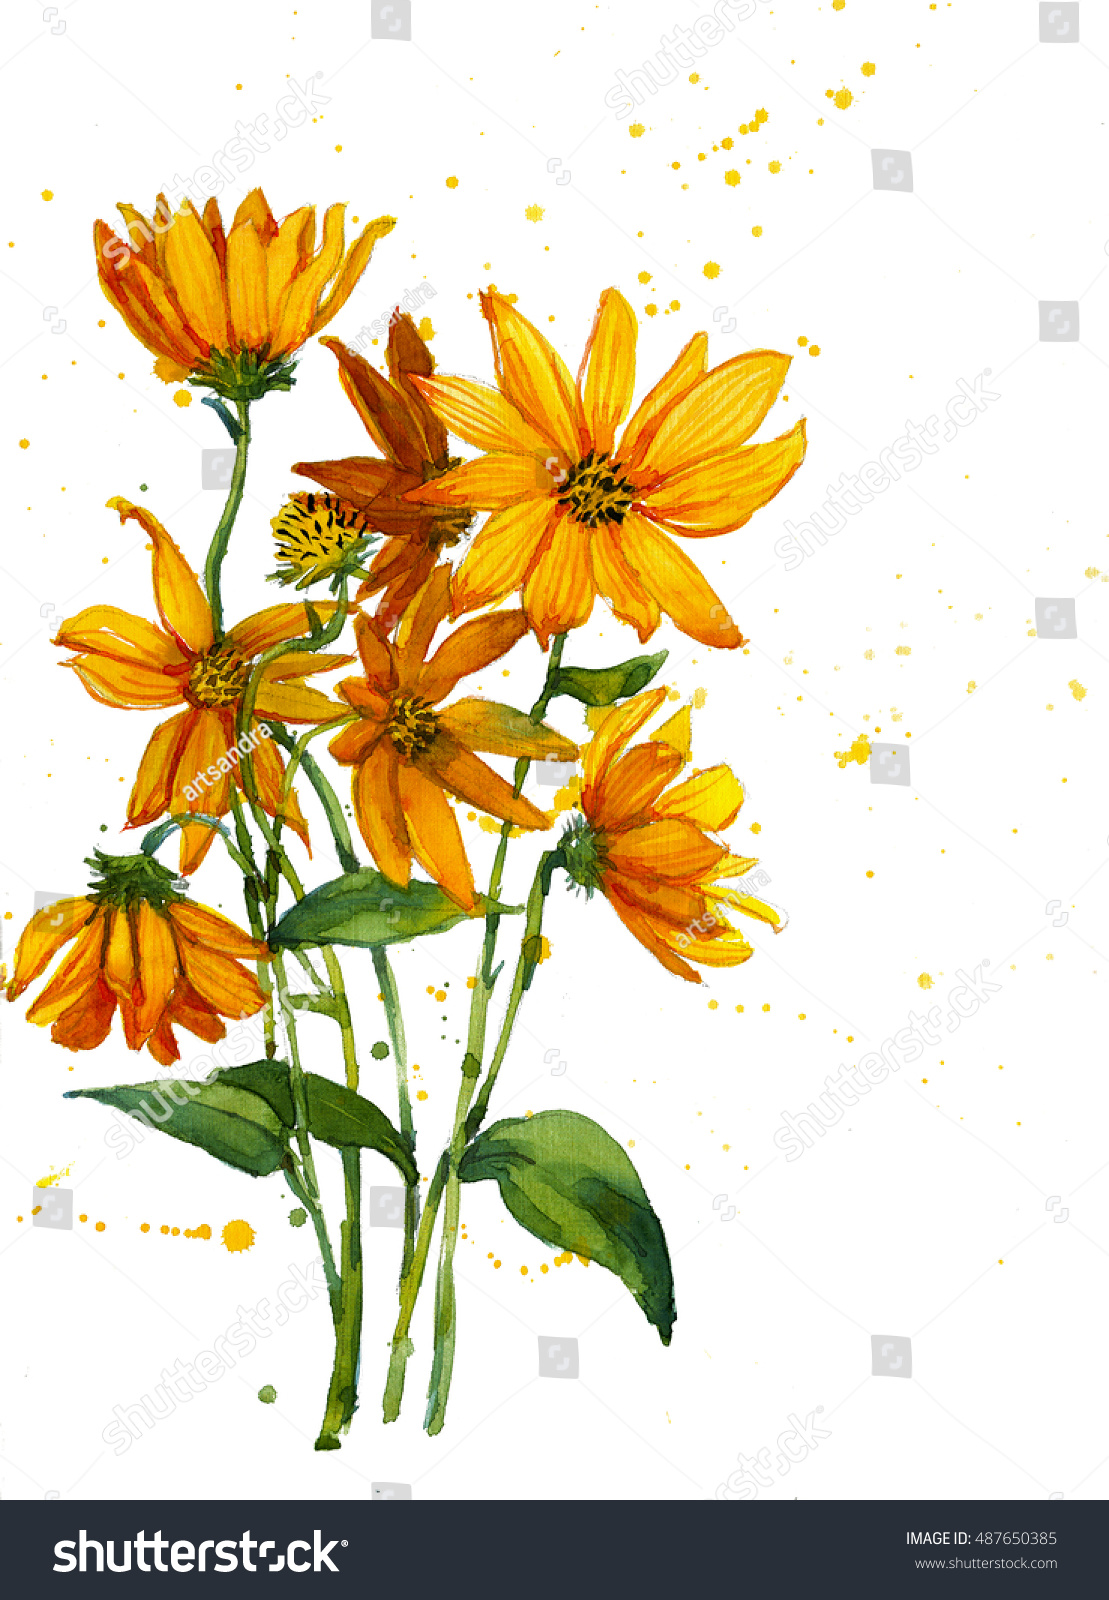 Freehand painted yellow flowers bouquet isolated stock illustration freehand painted yellow flowers bouquet isolated on white izmirmasajfo